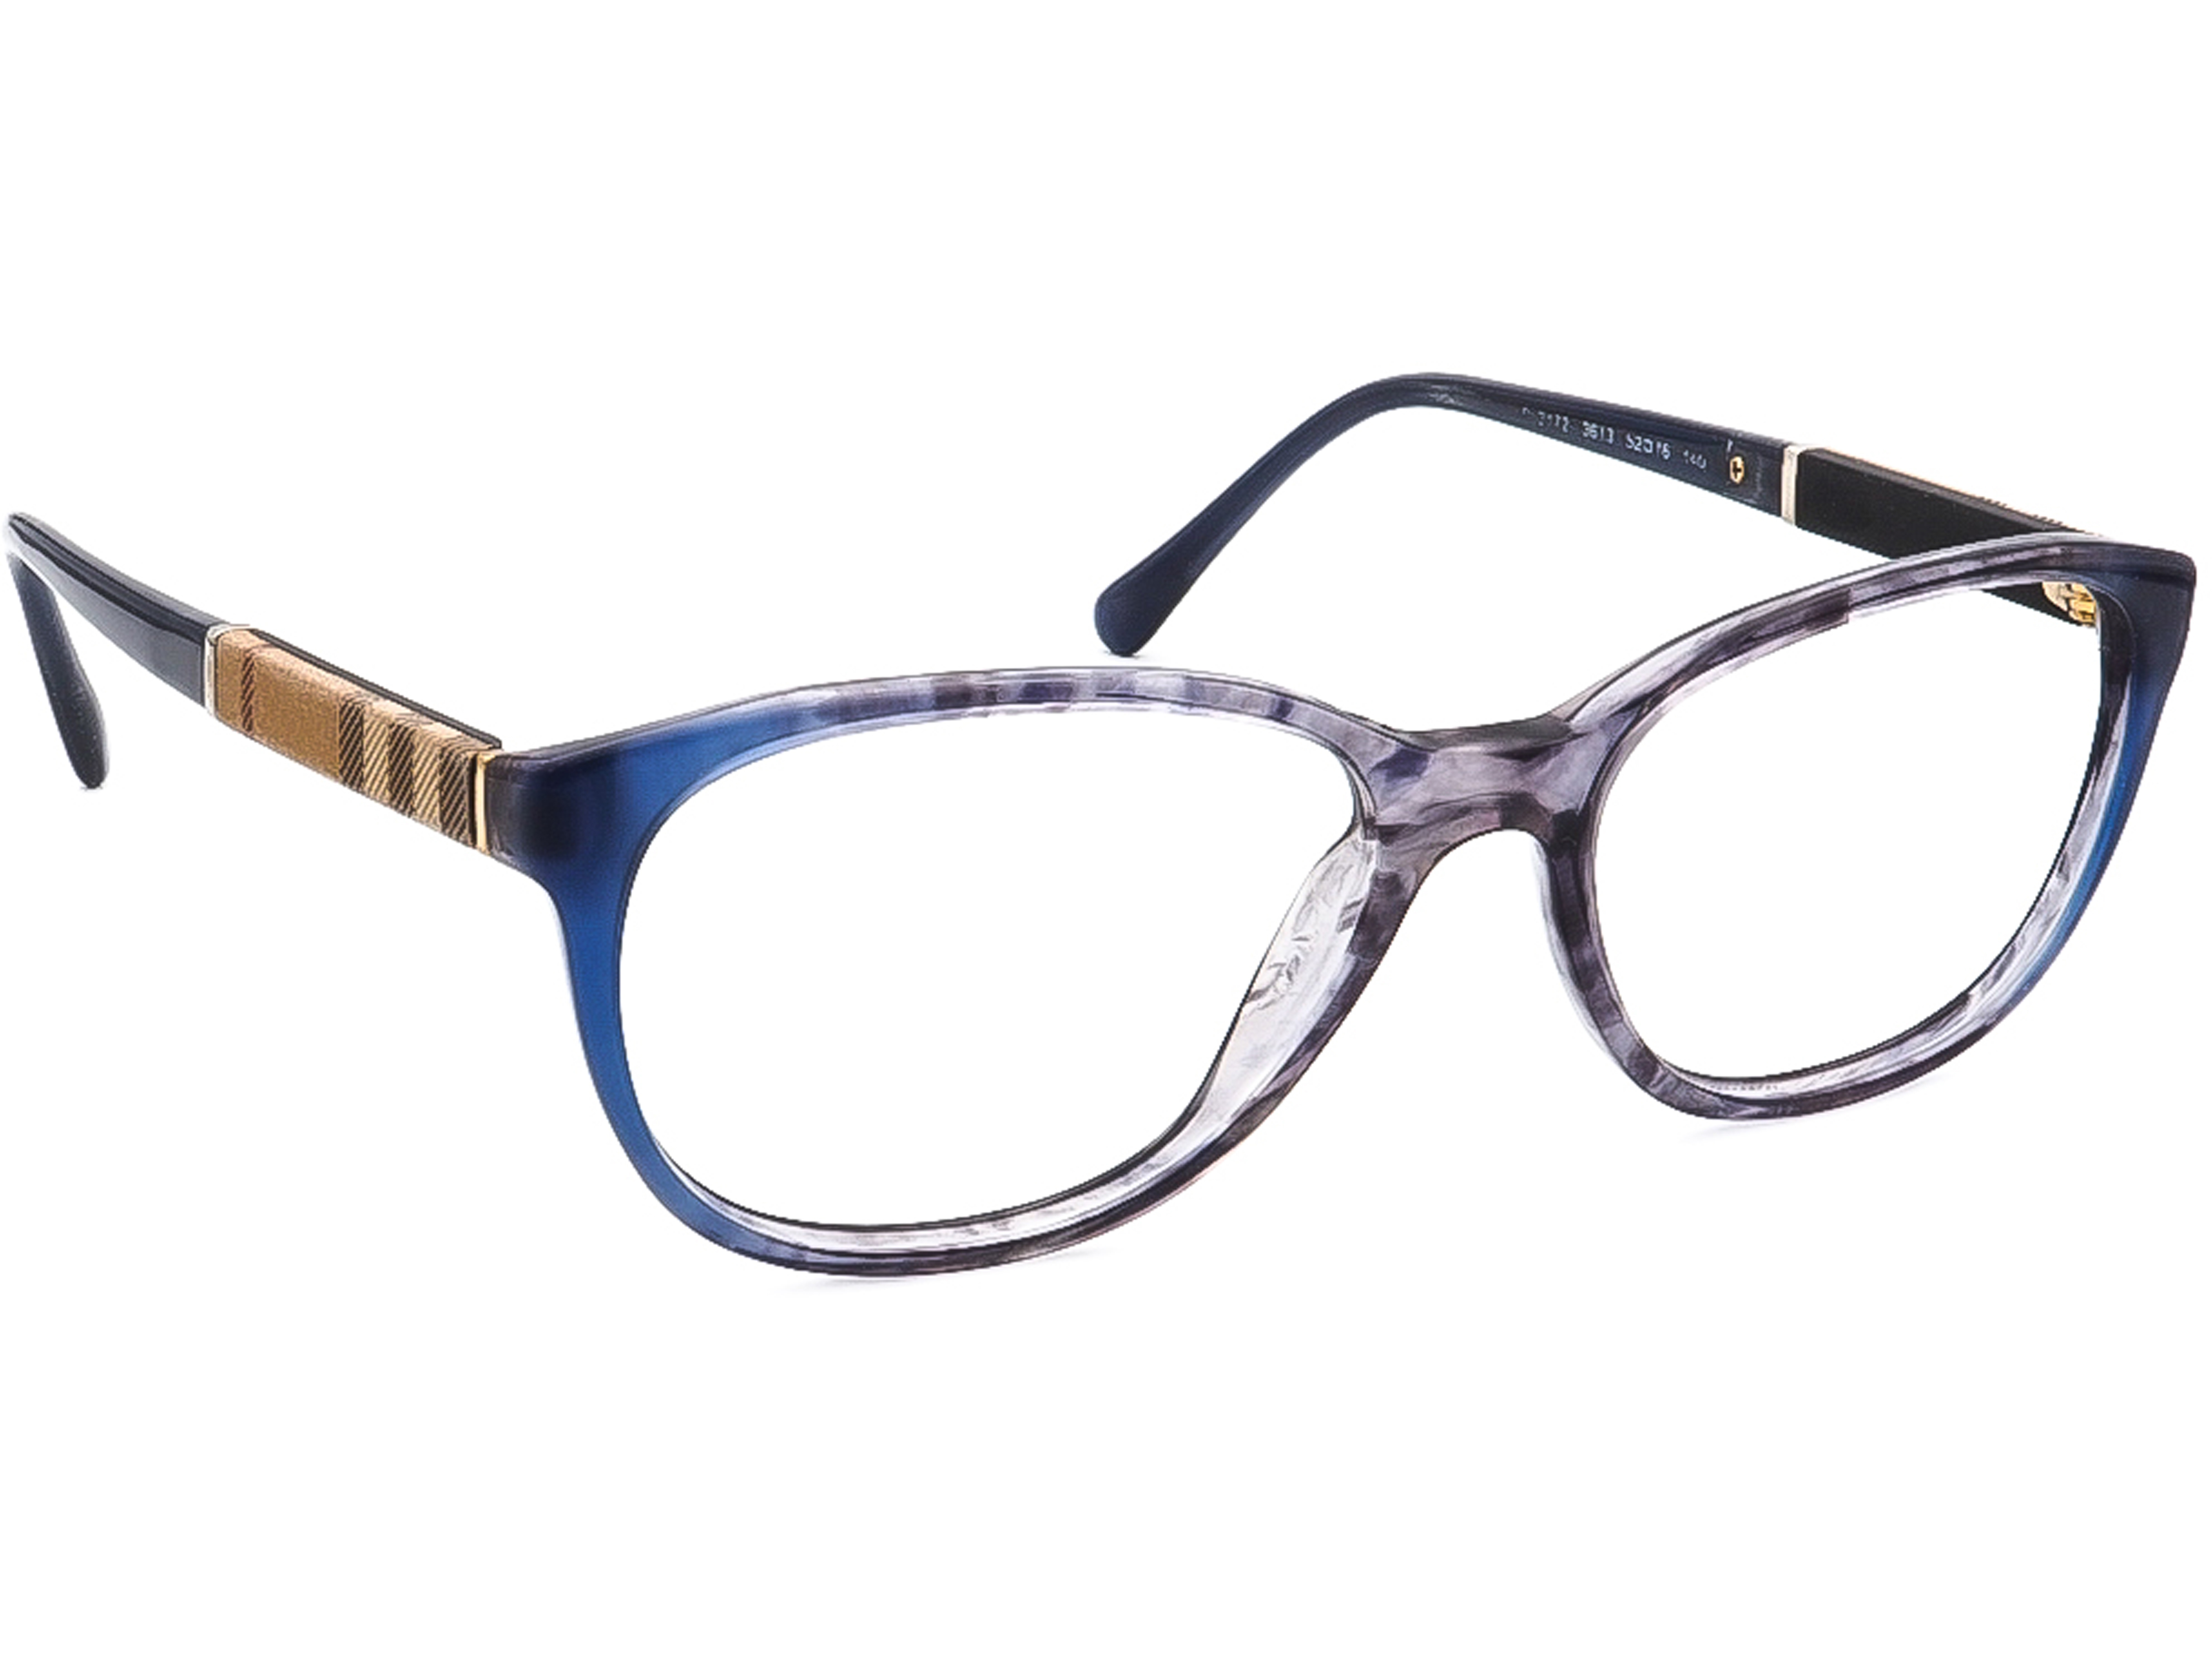 Burberry B 2172 3613 Eyeglasses